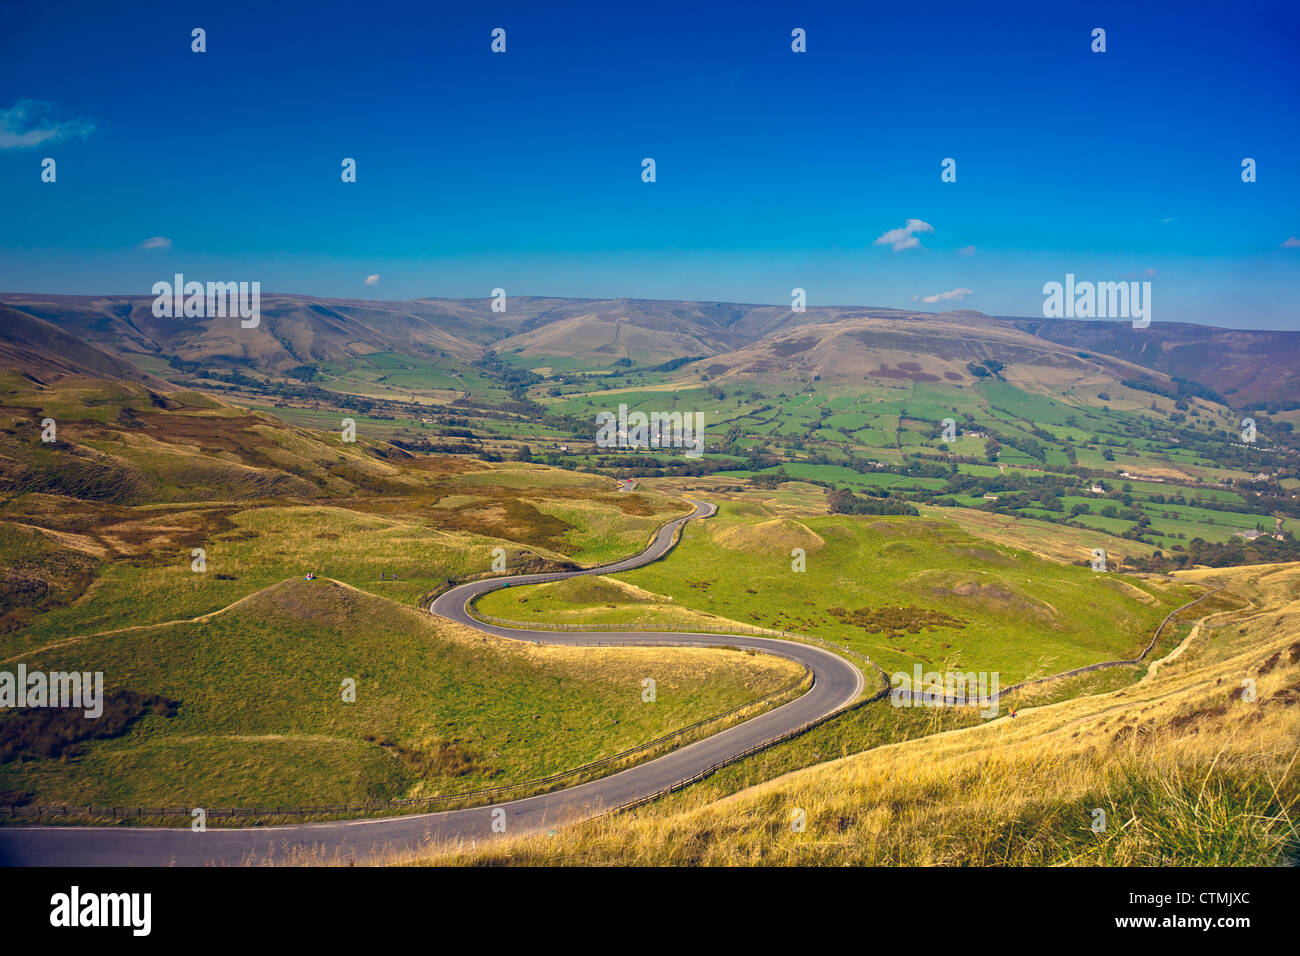 Vale of Edale and Kinder Scout from the summit of Mam Tor in the Peak District National Park Derbyshire England - Stock Image